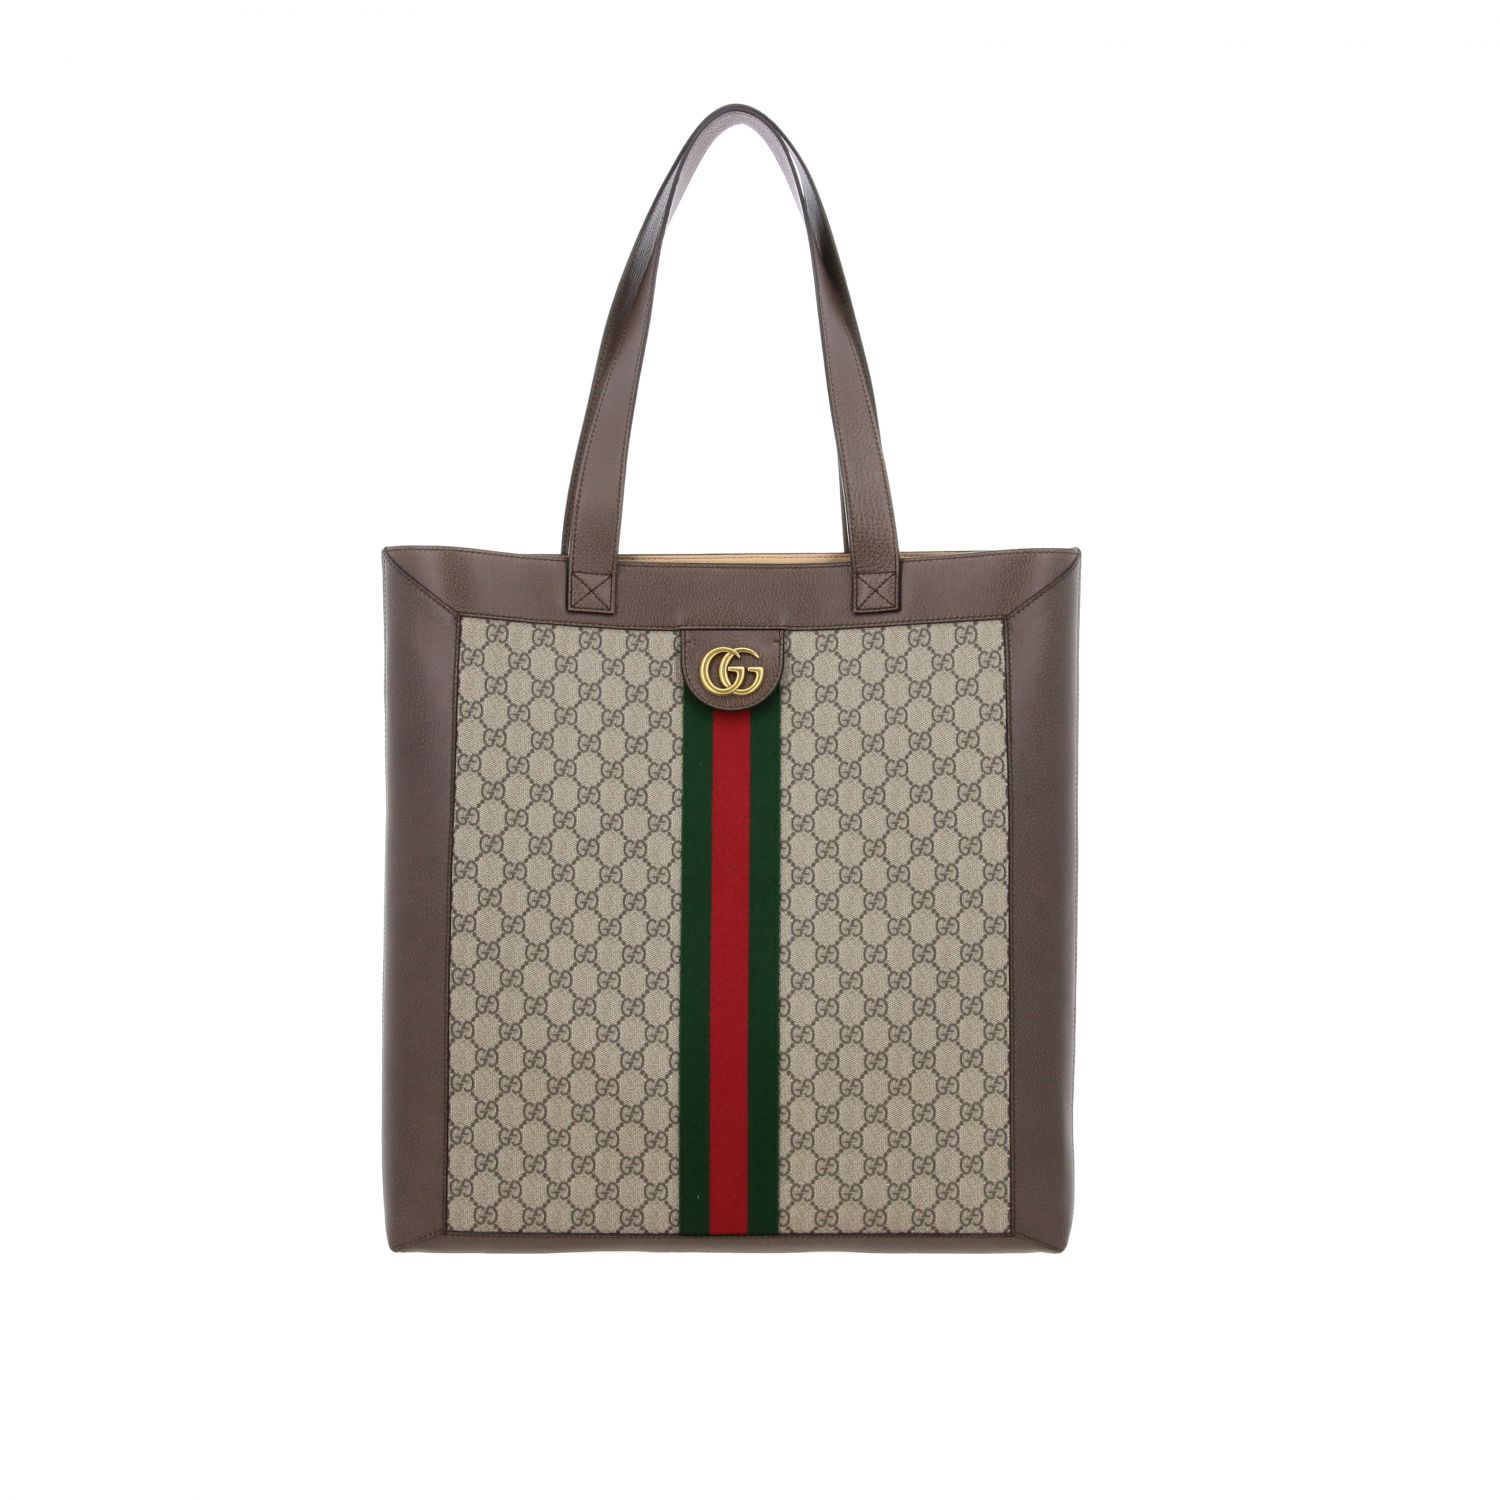 Borsa Ophidia shopping Gucci in pelle GG Supreme beige 1